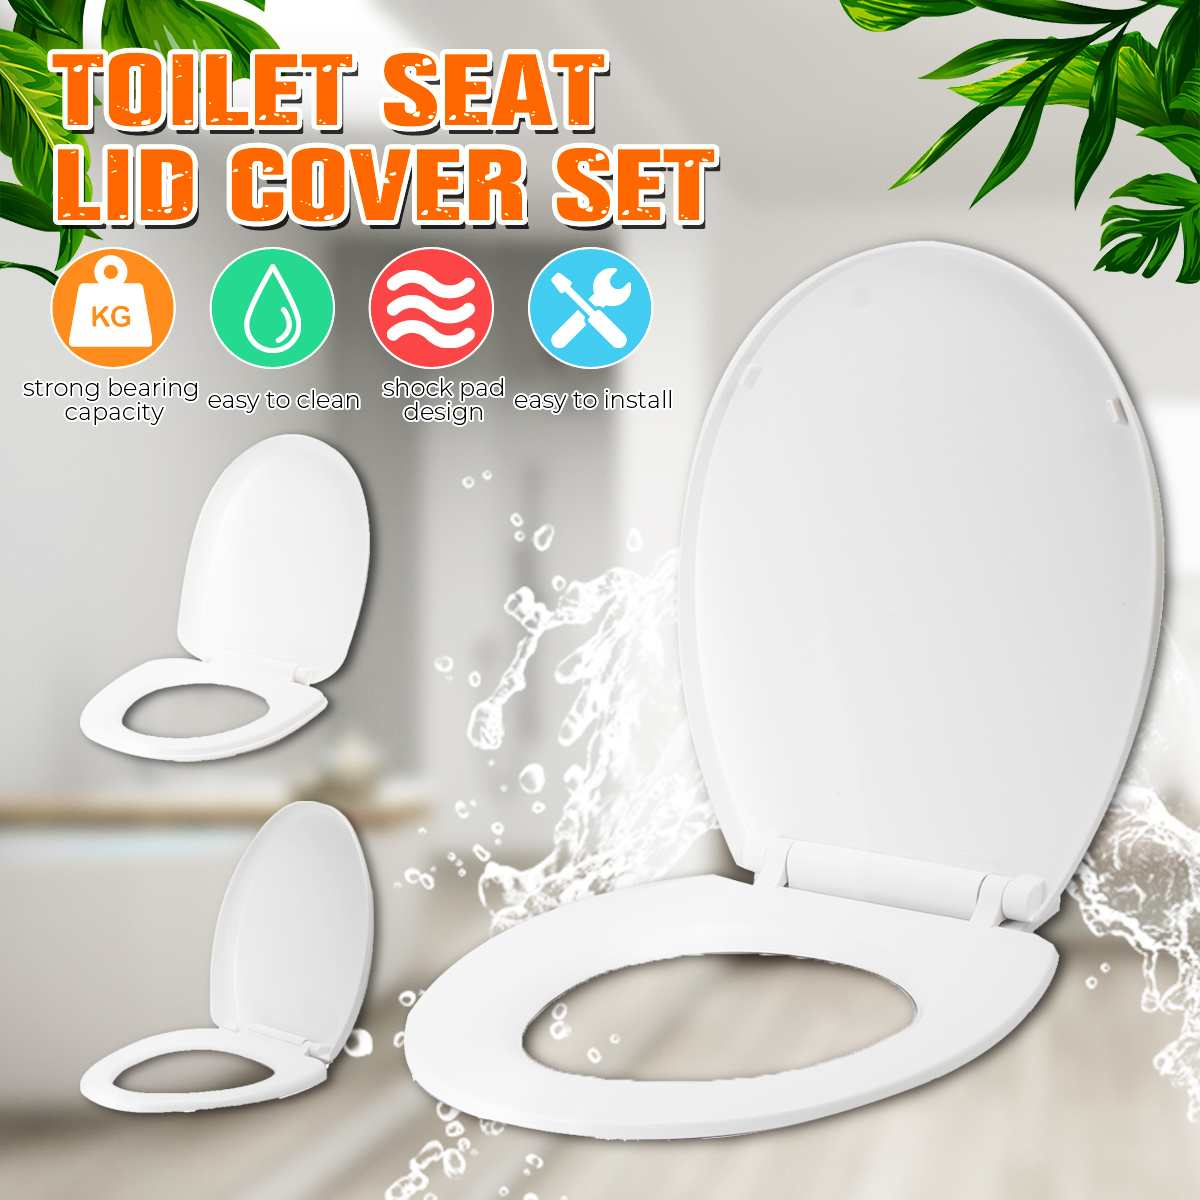 Xueqin Square Round Universal Slow-Close Toilet Seat Lid Cover Set ABS Thicken Toilet Seat Replacement Antibacterial 3Types